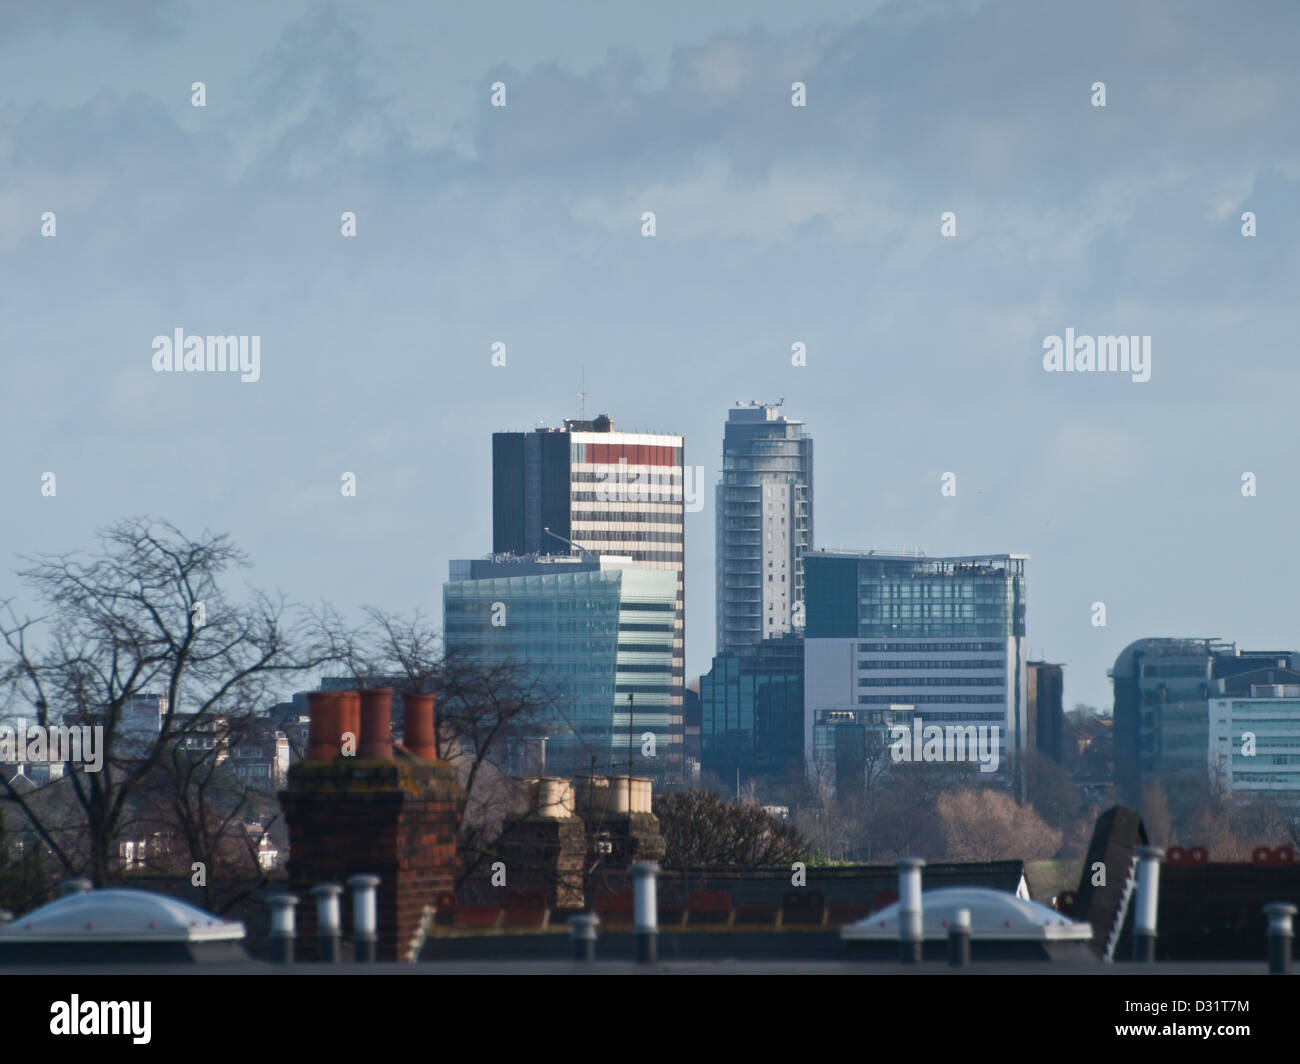 The architecture of central Croydon rises up above rooftops and chimney stacks. - Stock Image